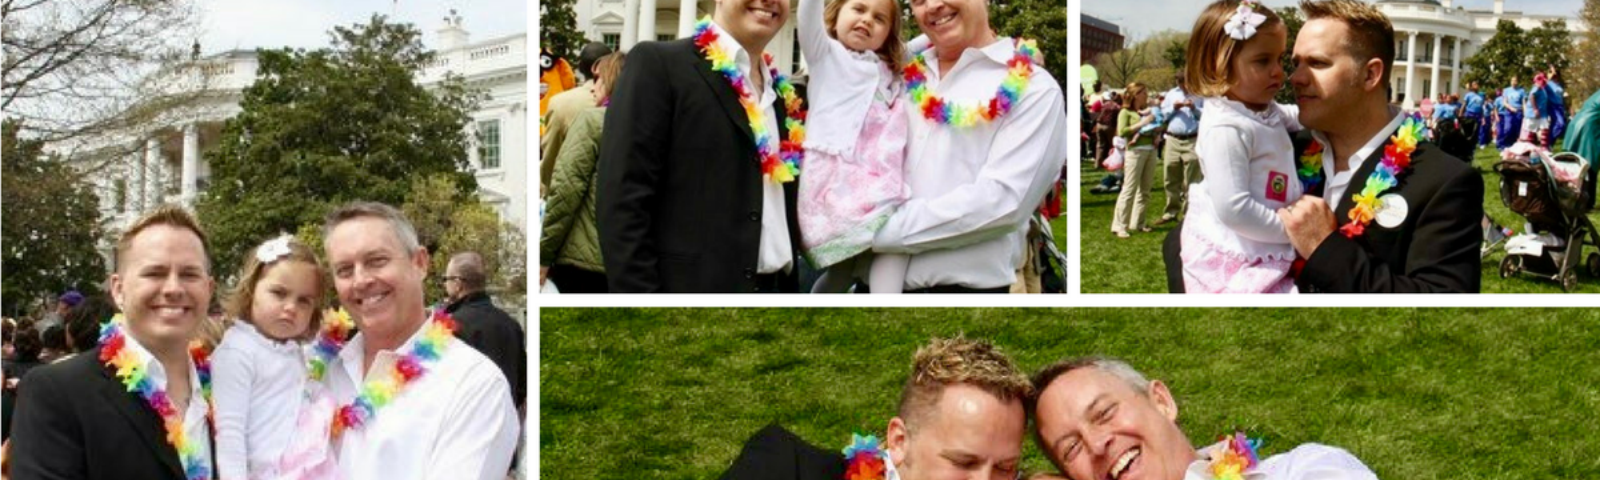 LGBTQ Families at the White House Easter Egg Roll: What Did It Mean To Me?